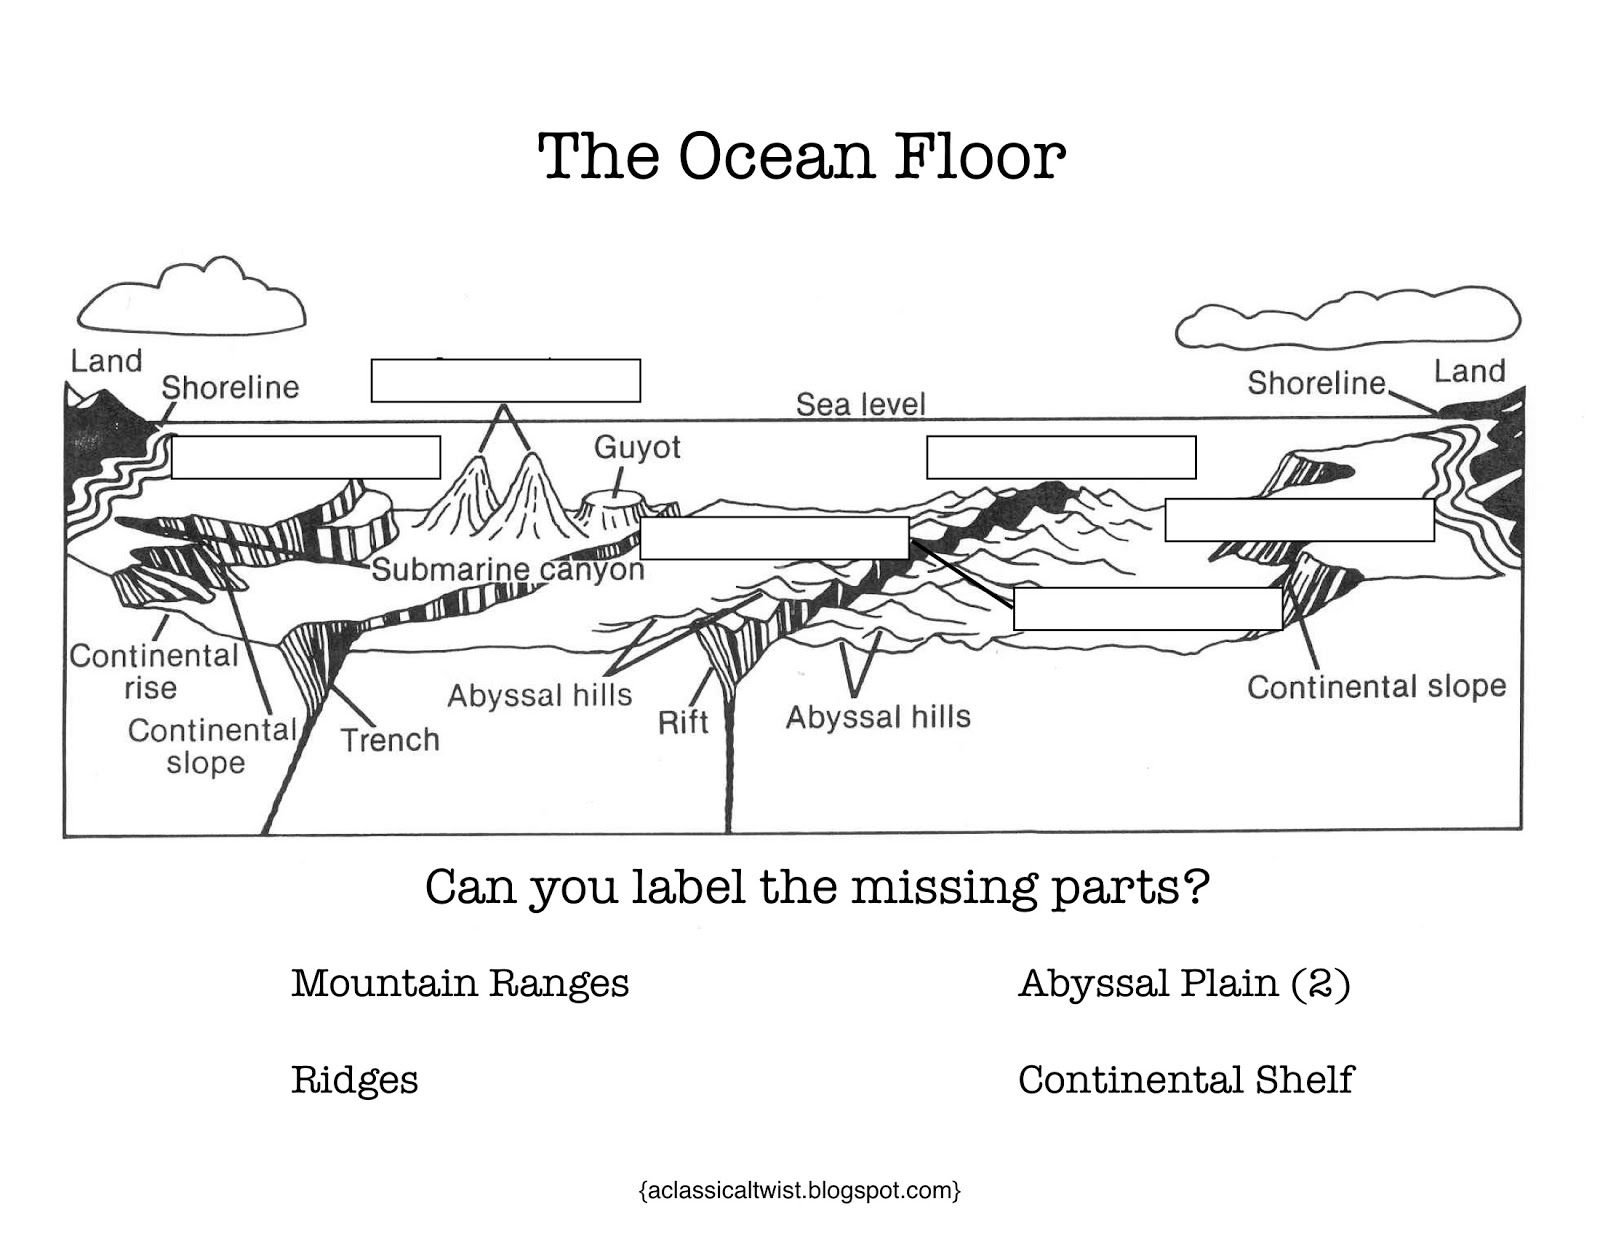 Free Worksheet Features Of The Ocean Floor Worksheet 17 best images about ocean floor on pinterest the natural life and lesson plans